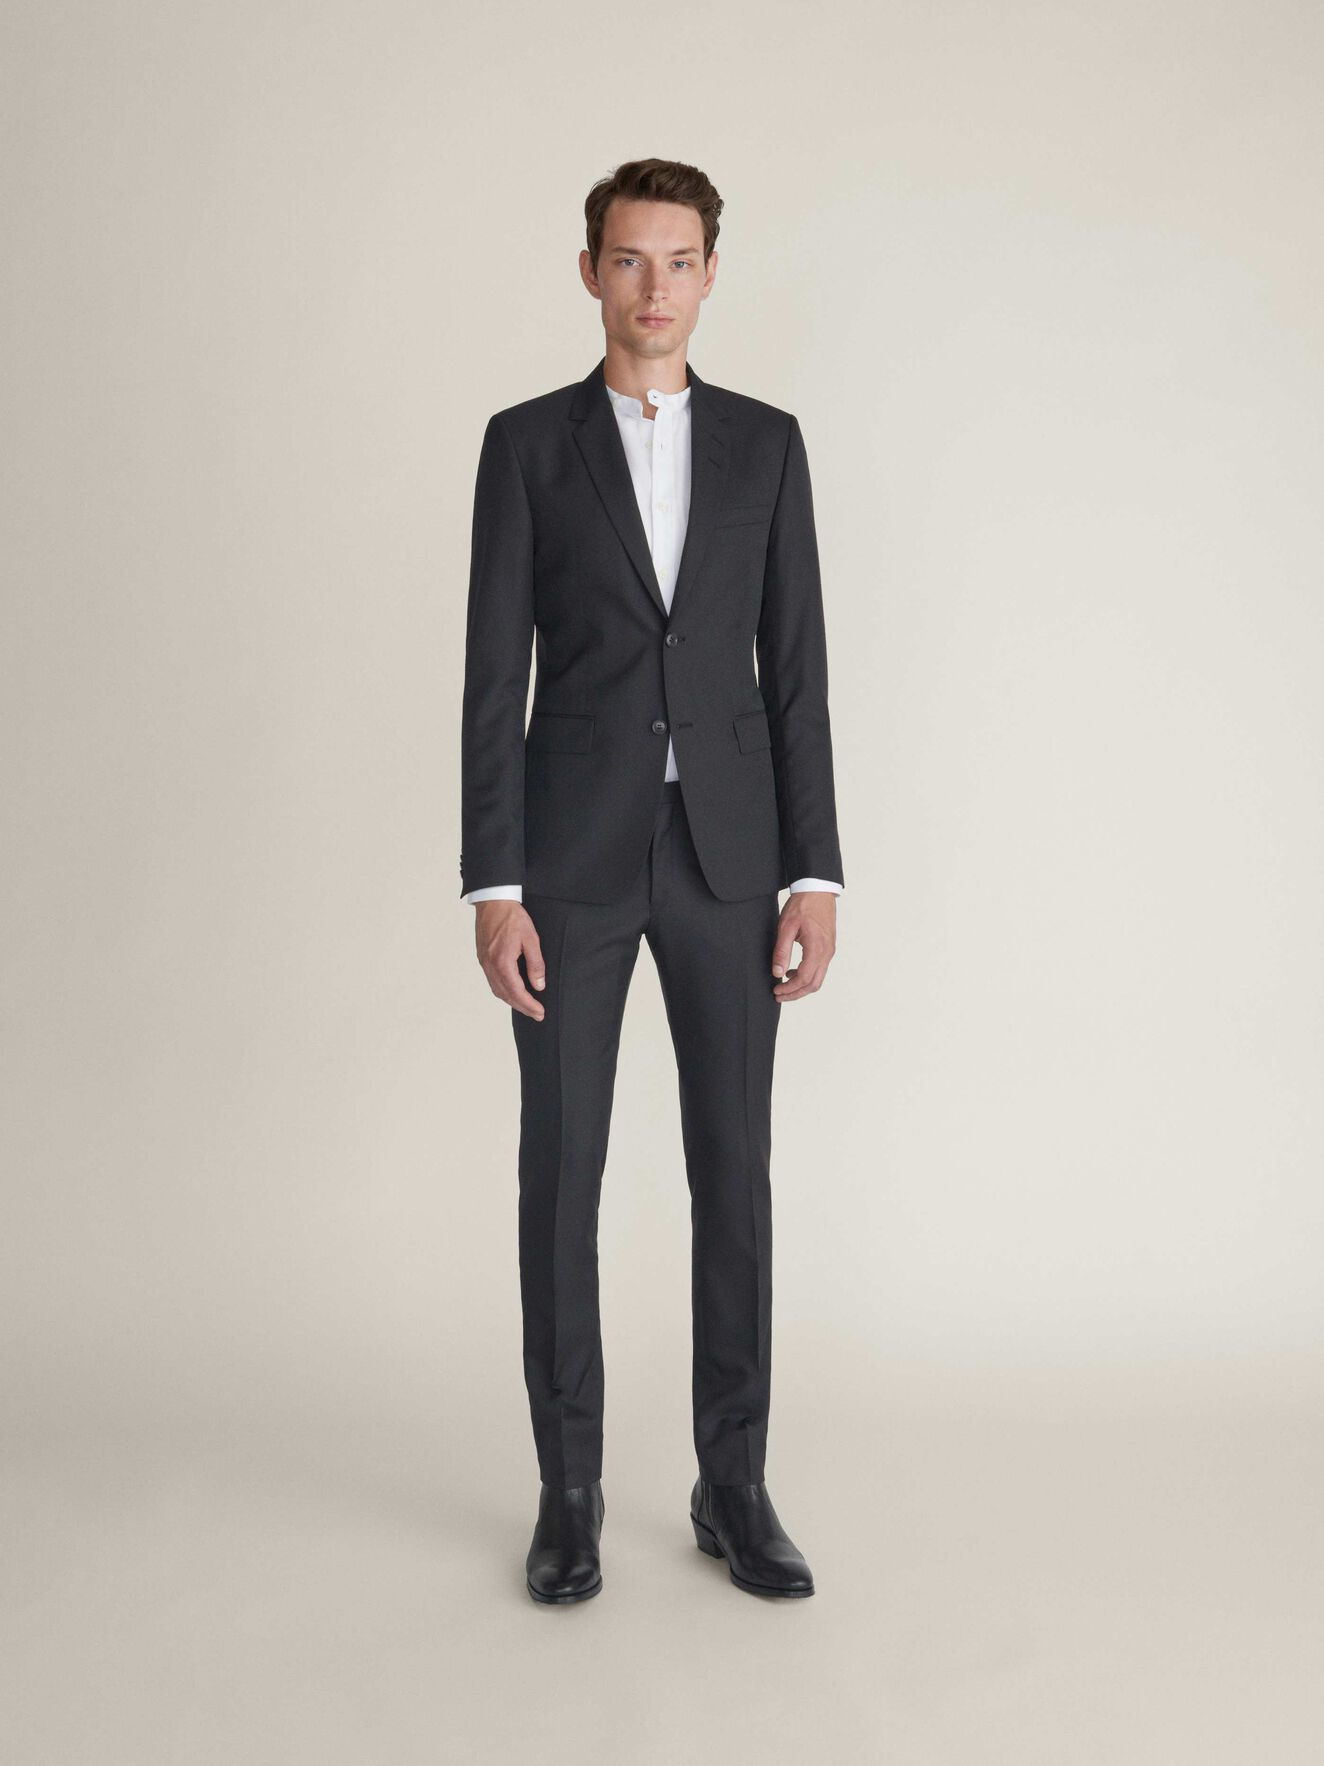 S.2018  Suit in Black from Tiger of Sweden